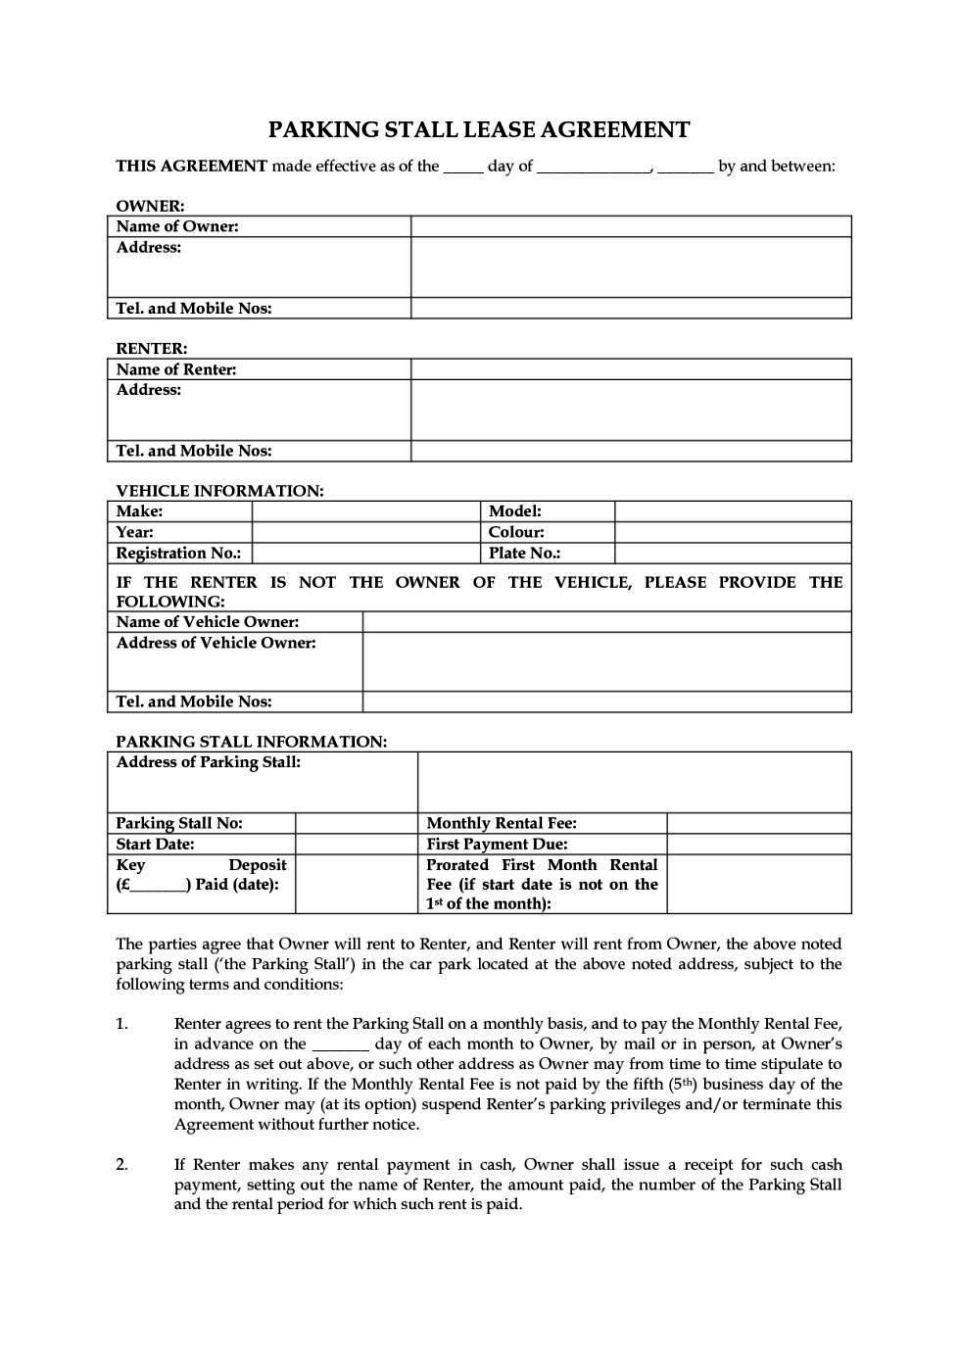 Tenancy agreement template uk free download for Letting agreement template free